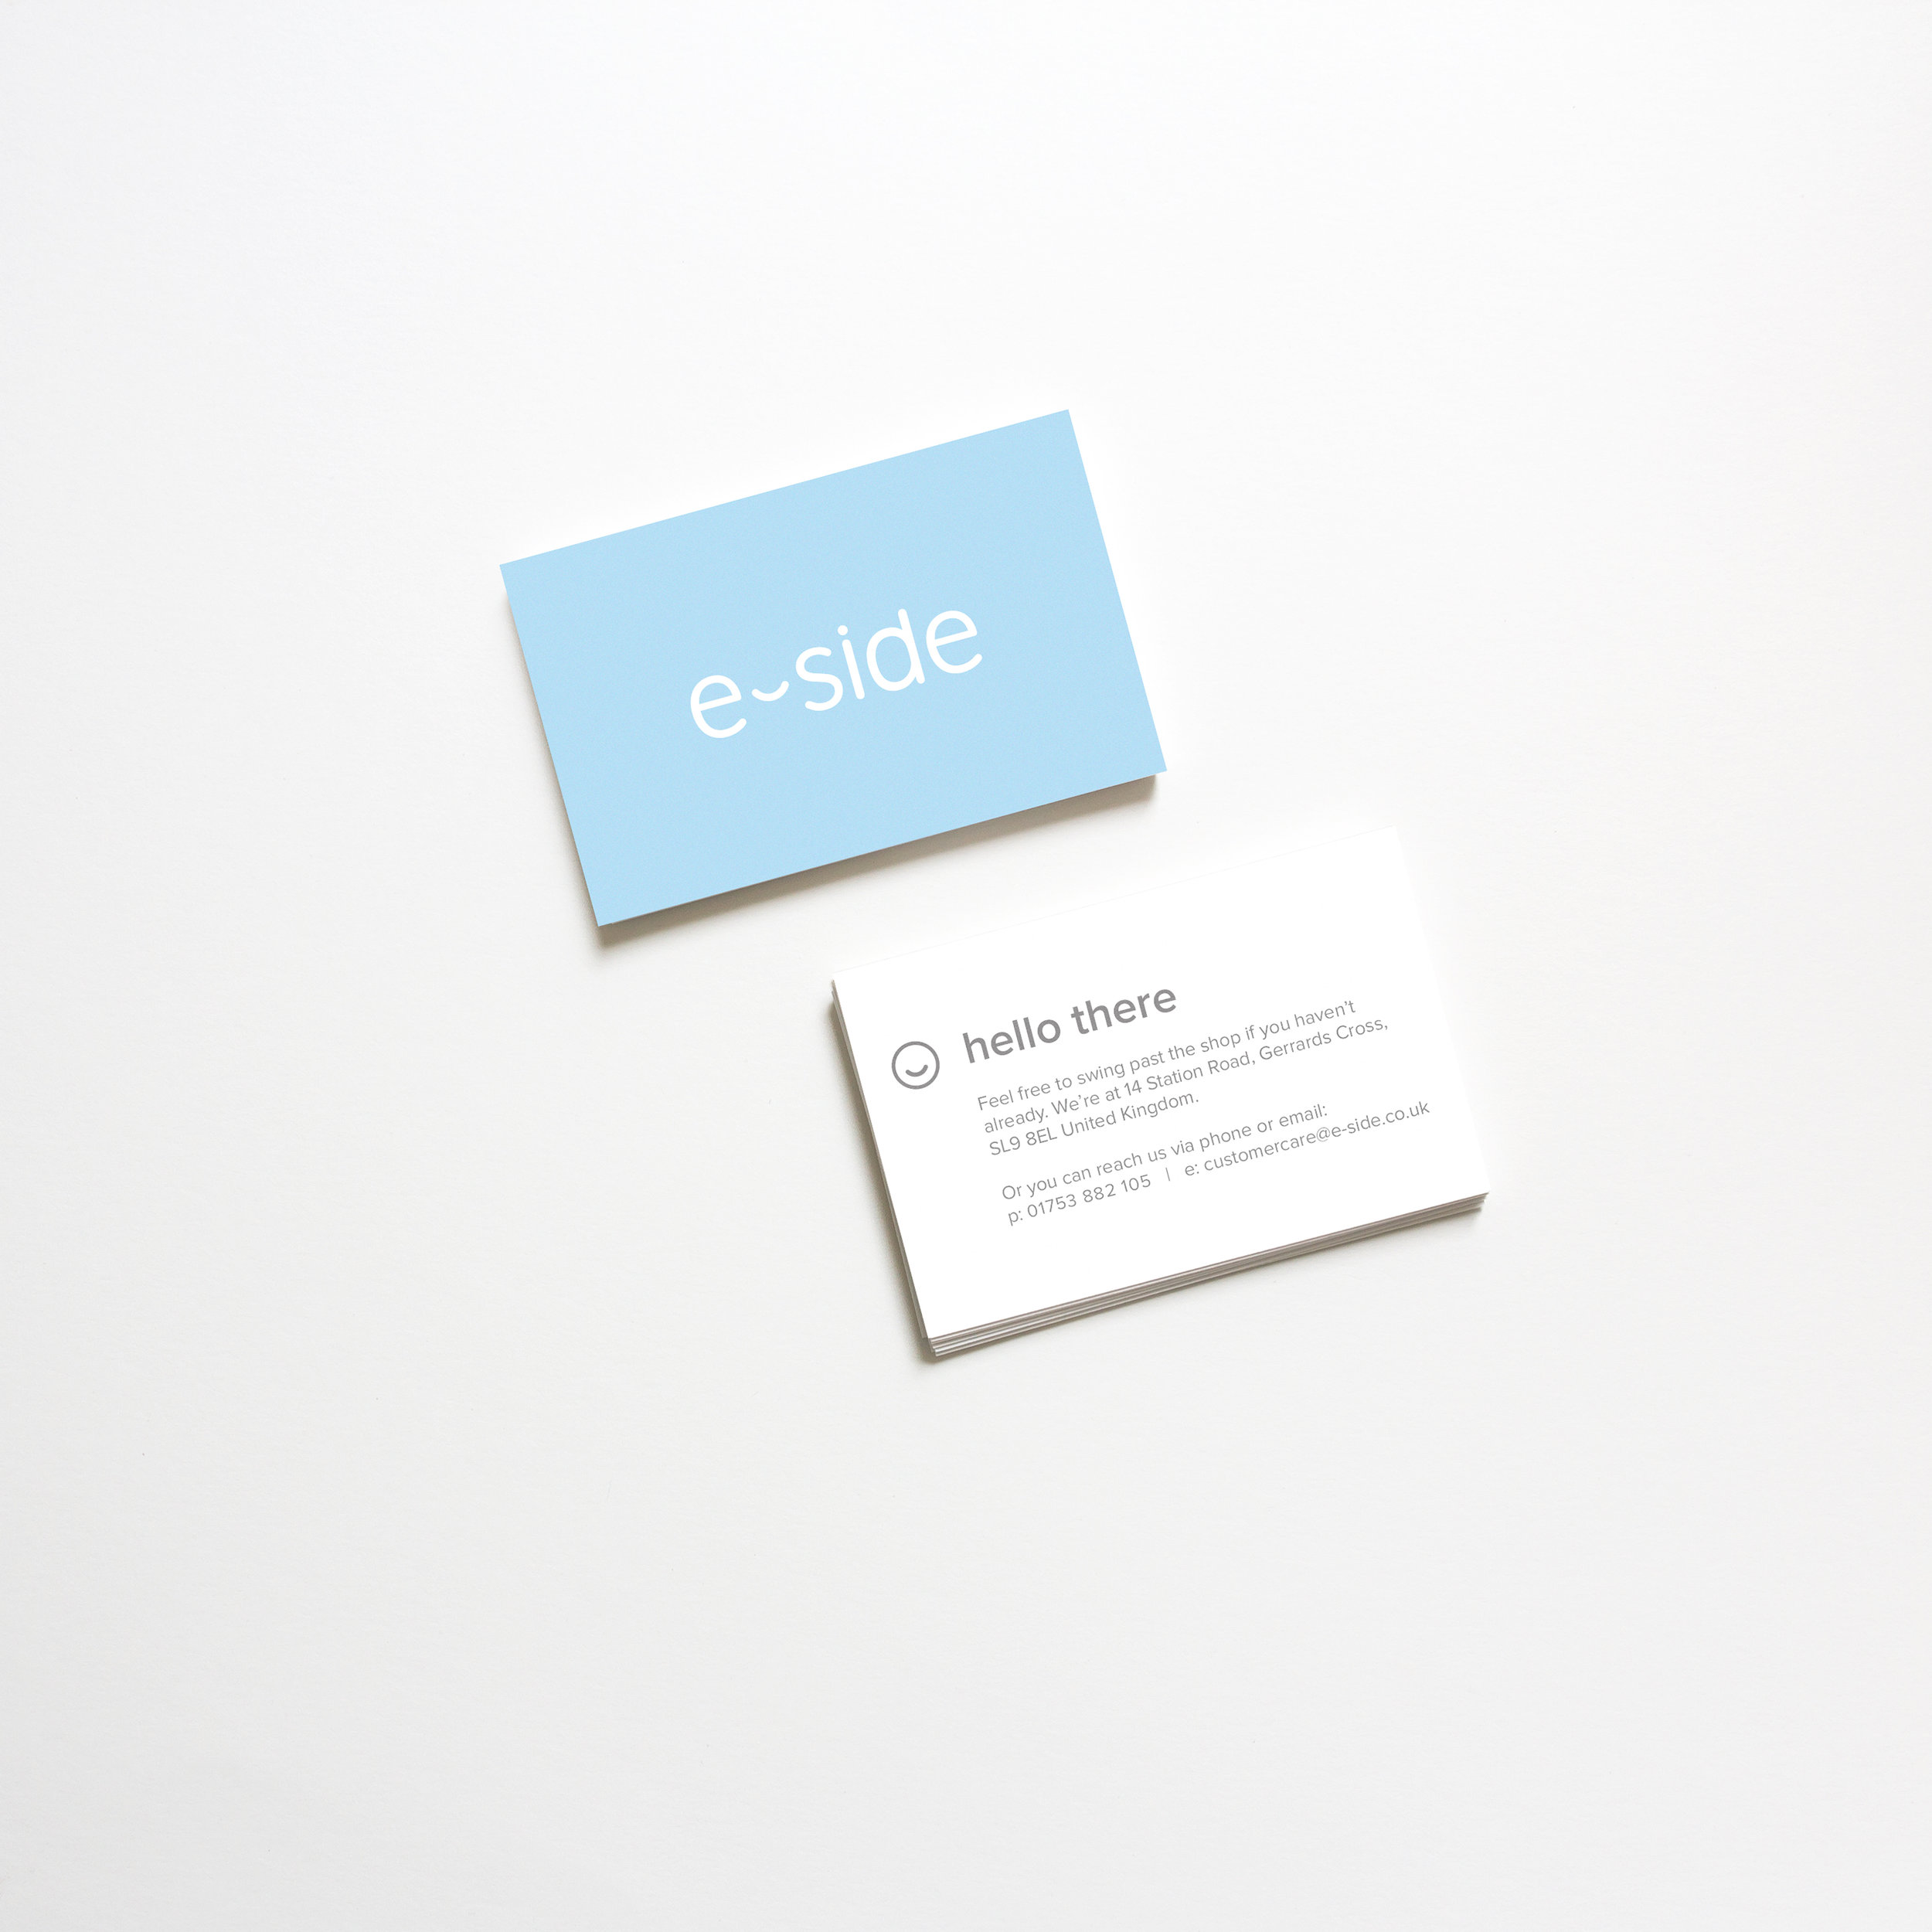 Simple, effective logo design and business card.